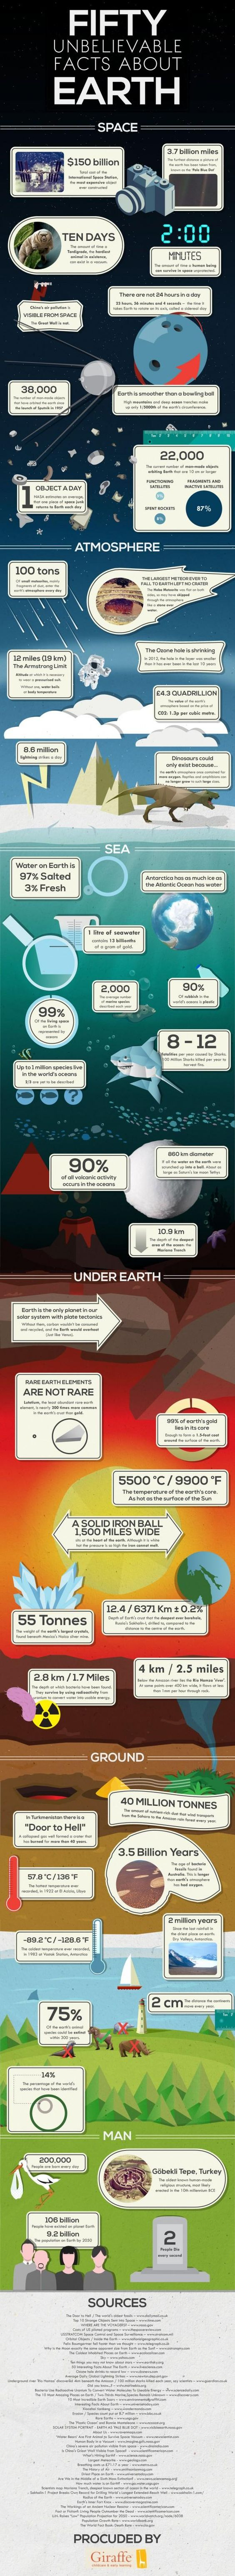 50 Facts About Earth, From Top to Bottom | Mental Floss